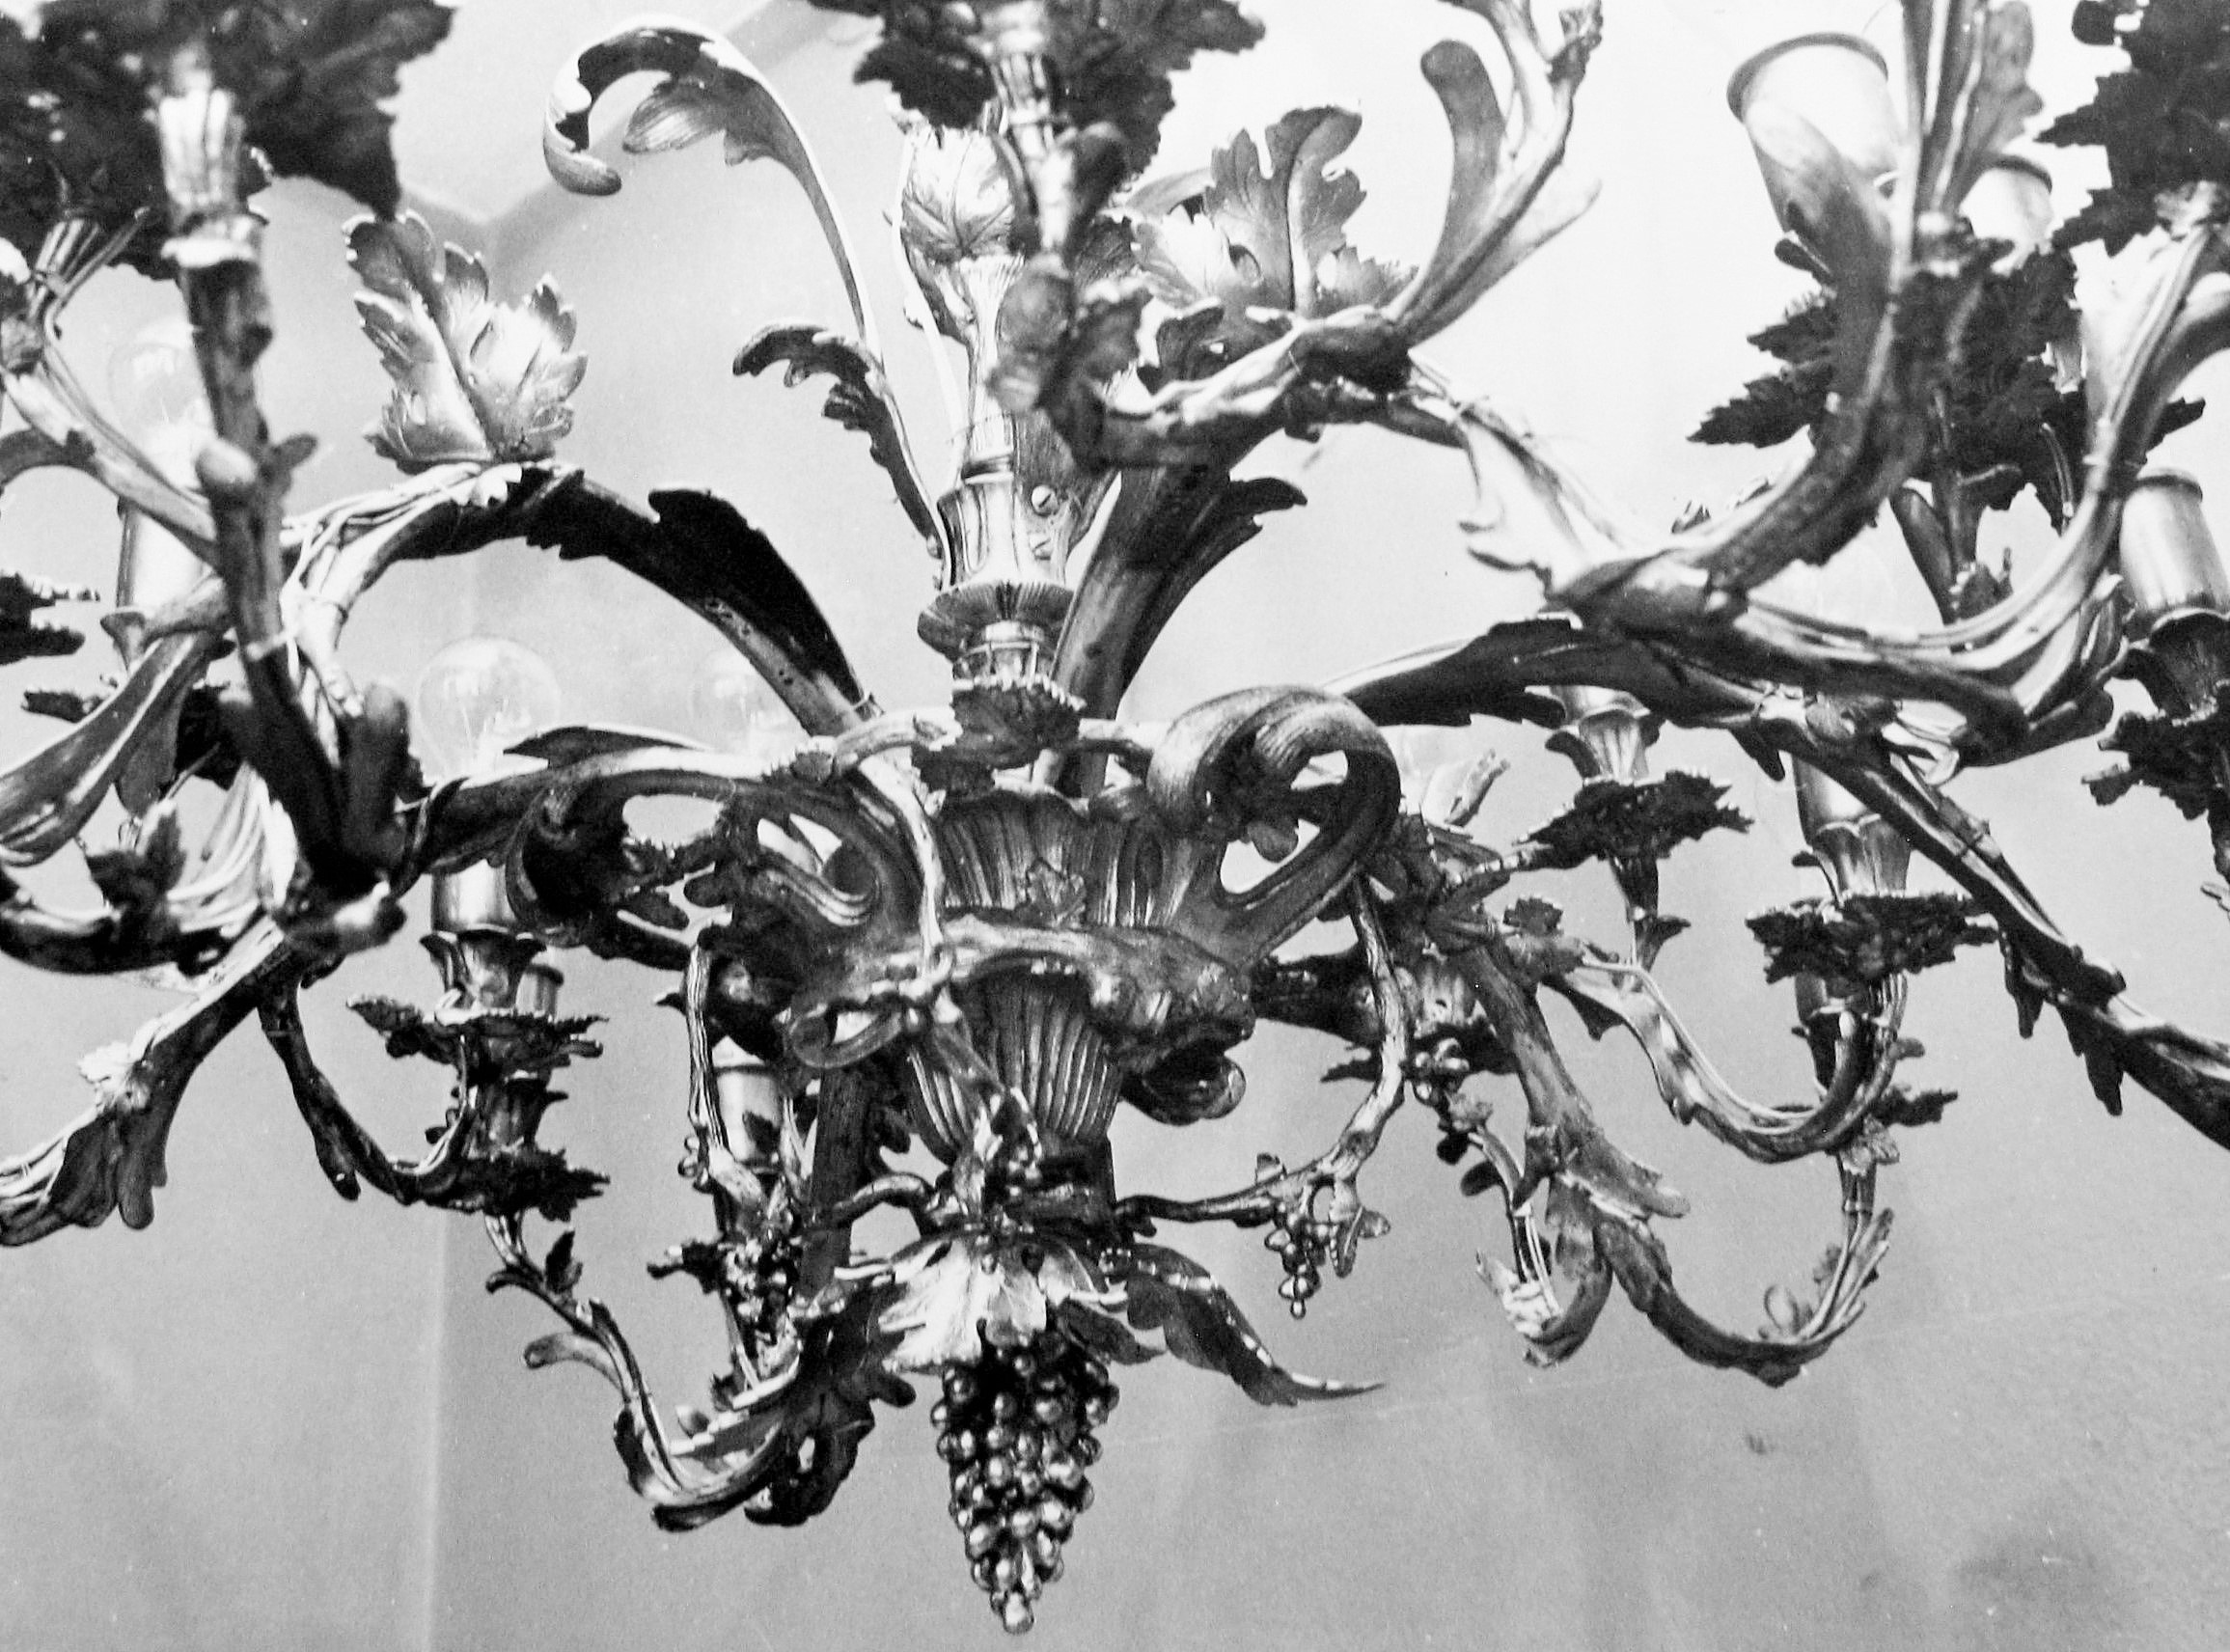 Chandelier IM-4620 after restoration, National Museum of Lithuania. Photo made in 1985, in: Kultūros paveldo centro Paveldosaugos biblioteka, f. 40, ap. 1, b. 444, fot. Nr. 21